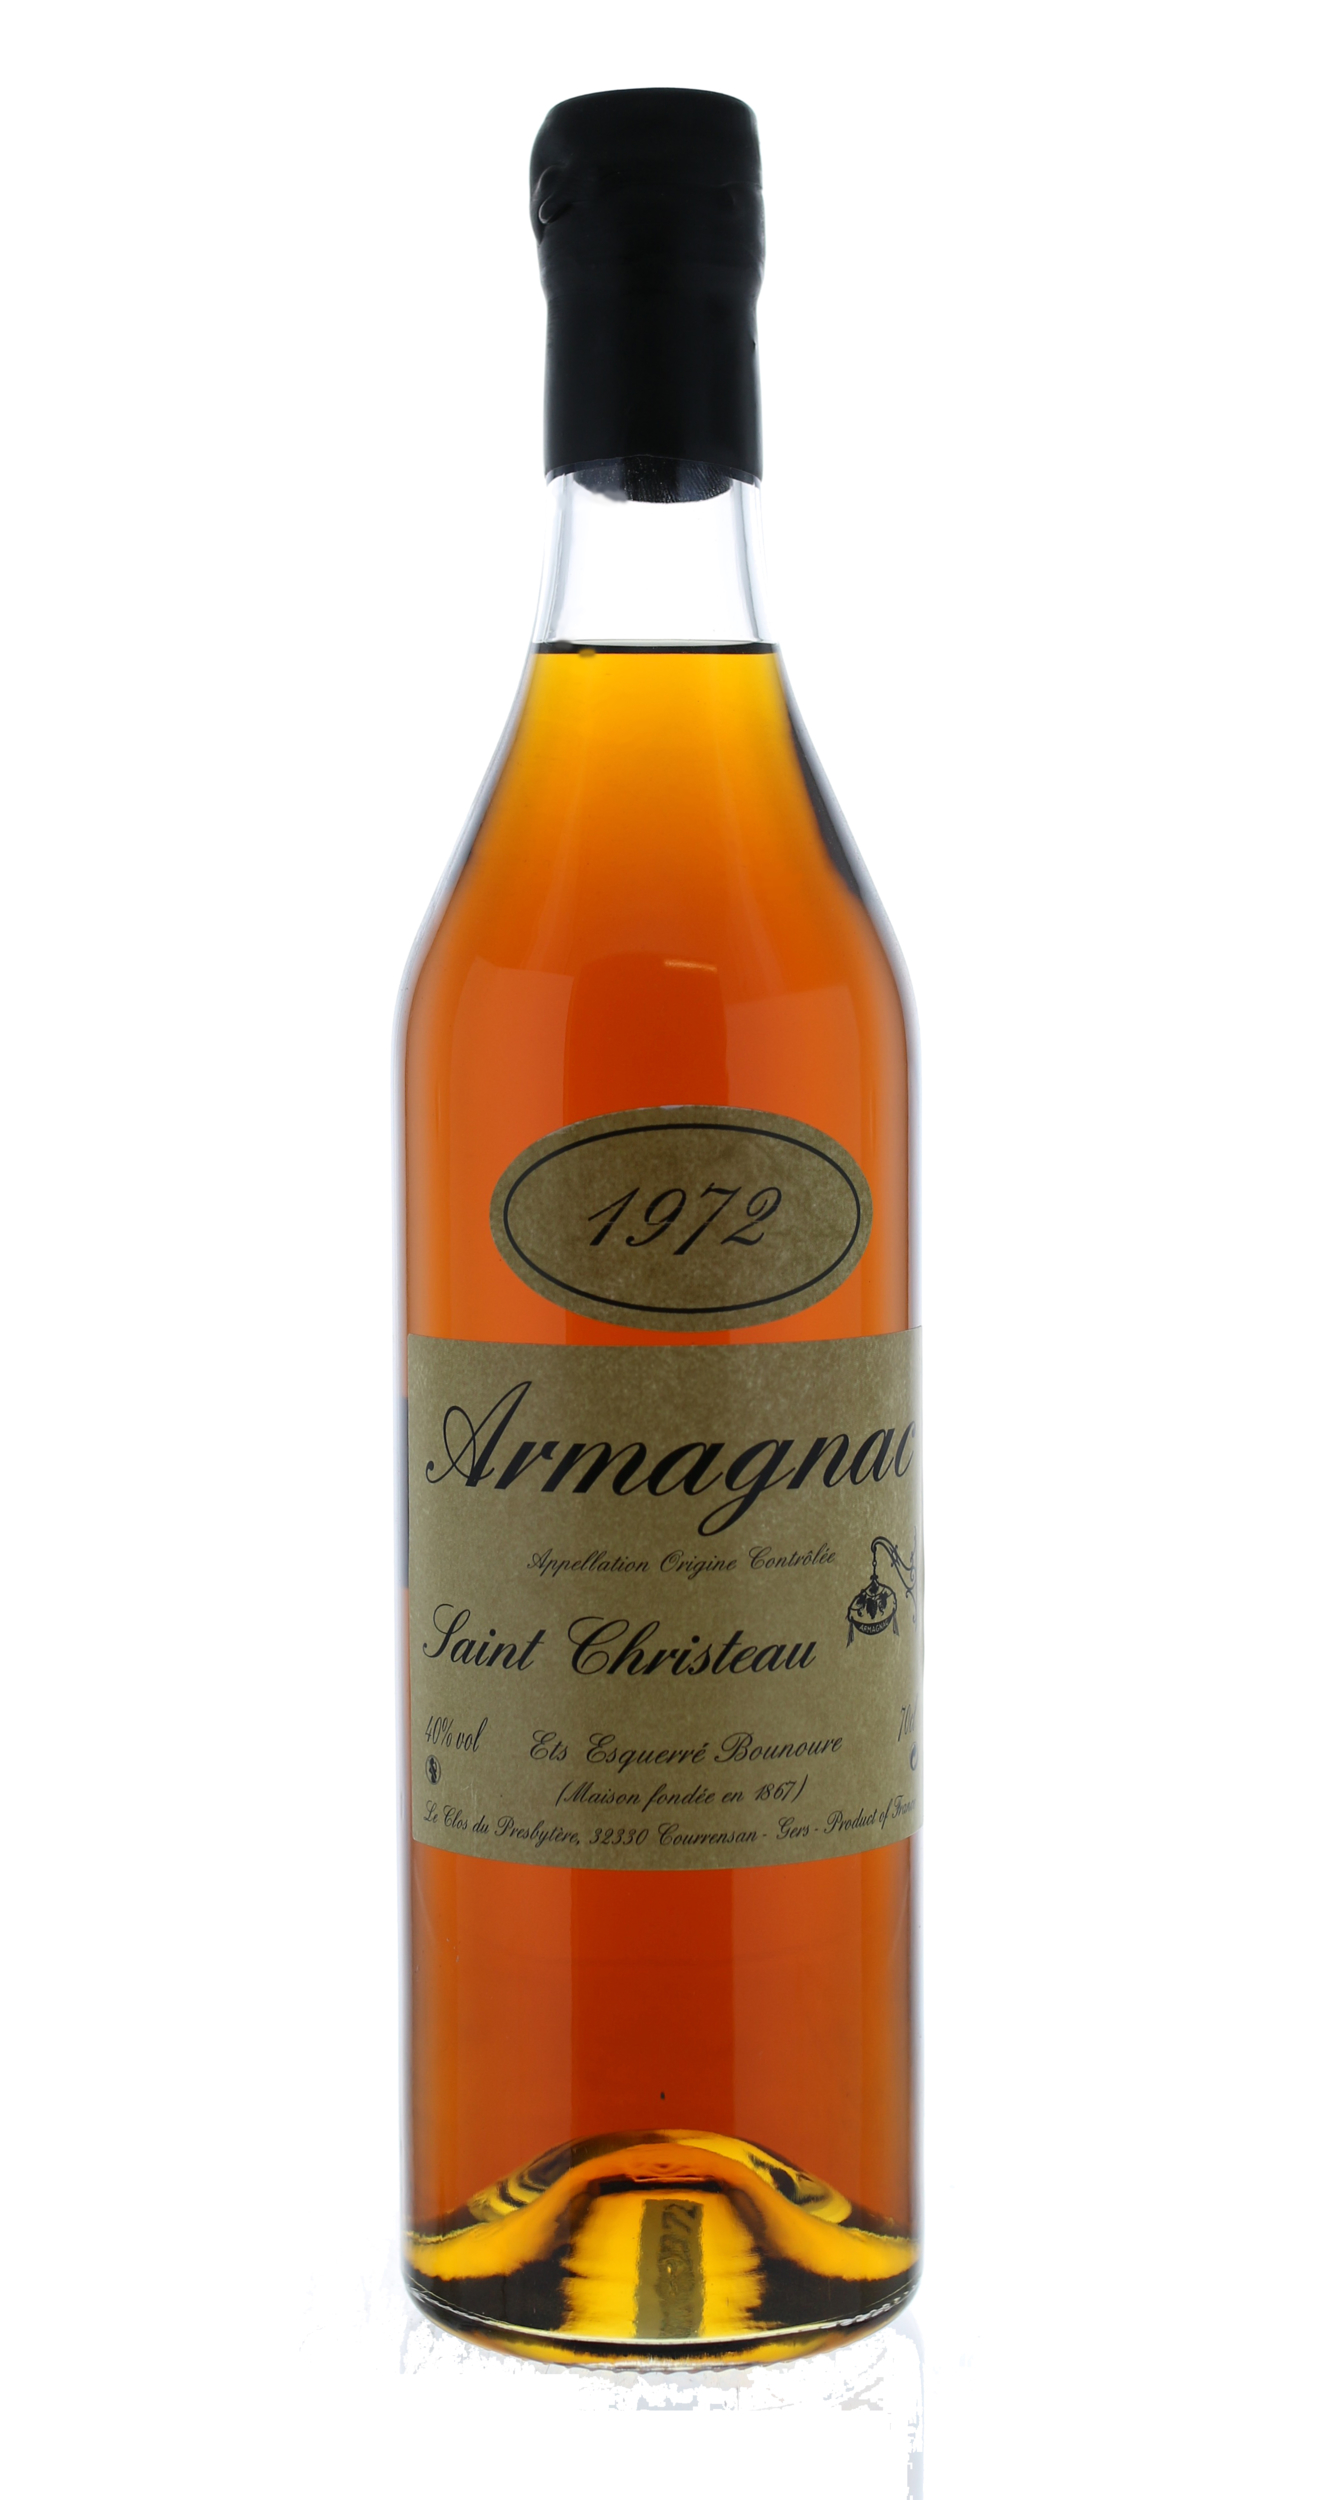 ARMAGNAC 1986 Saint-Christeau - 40° - G. Miclo